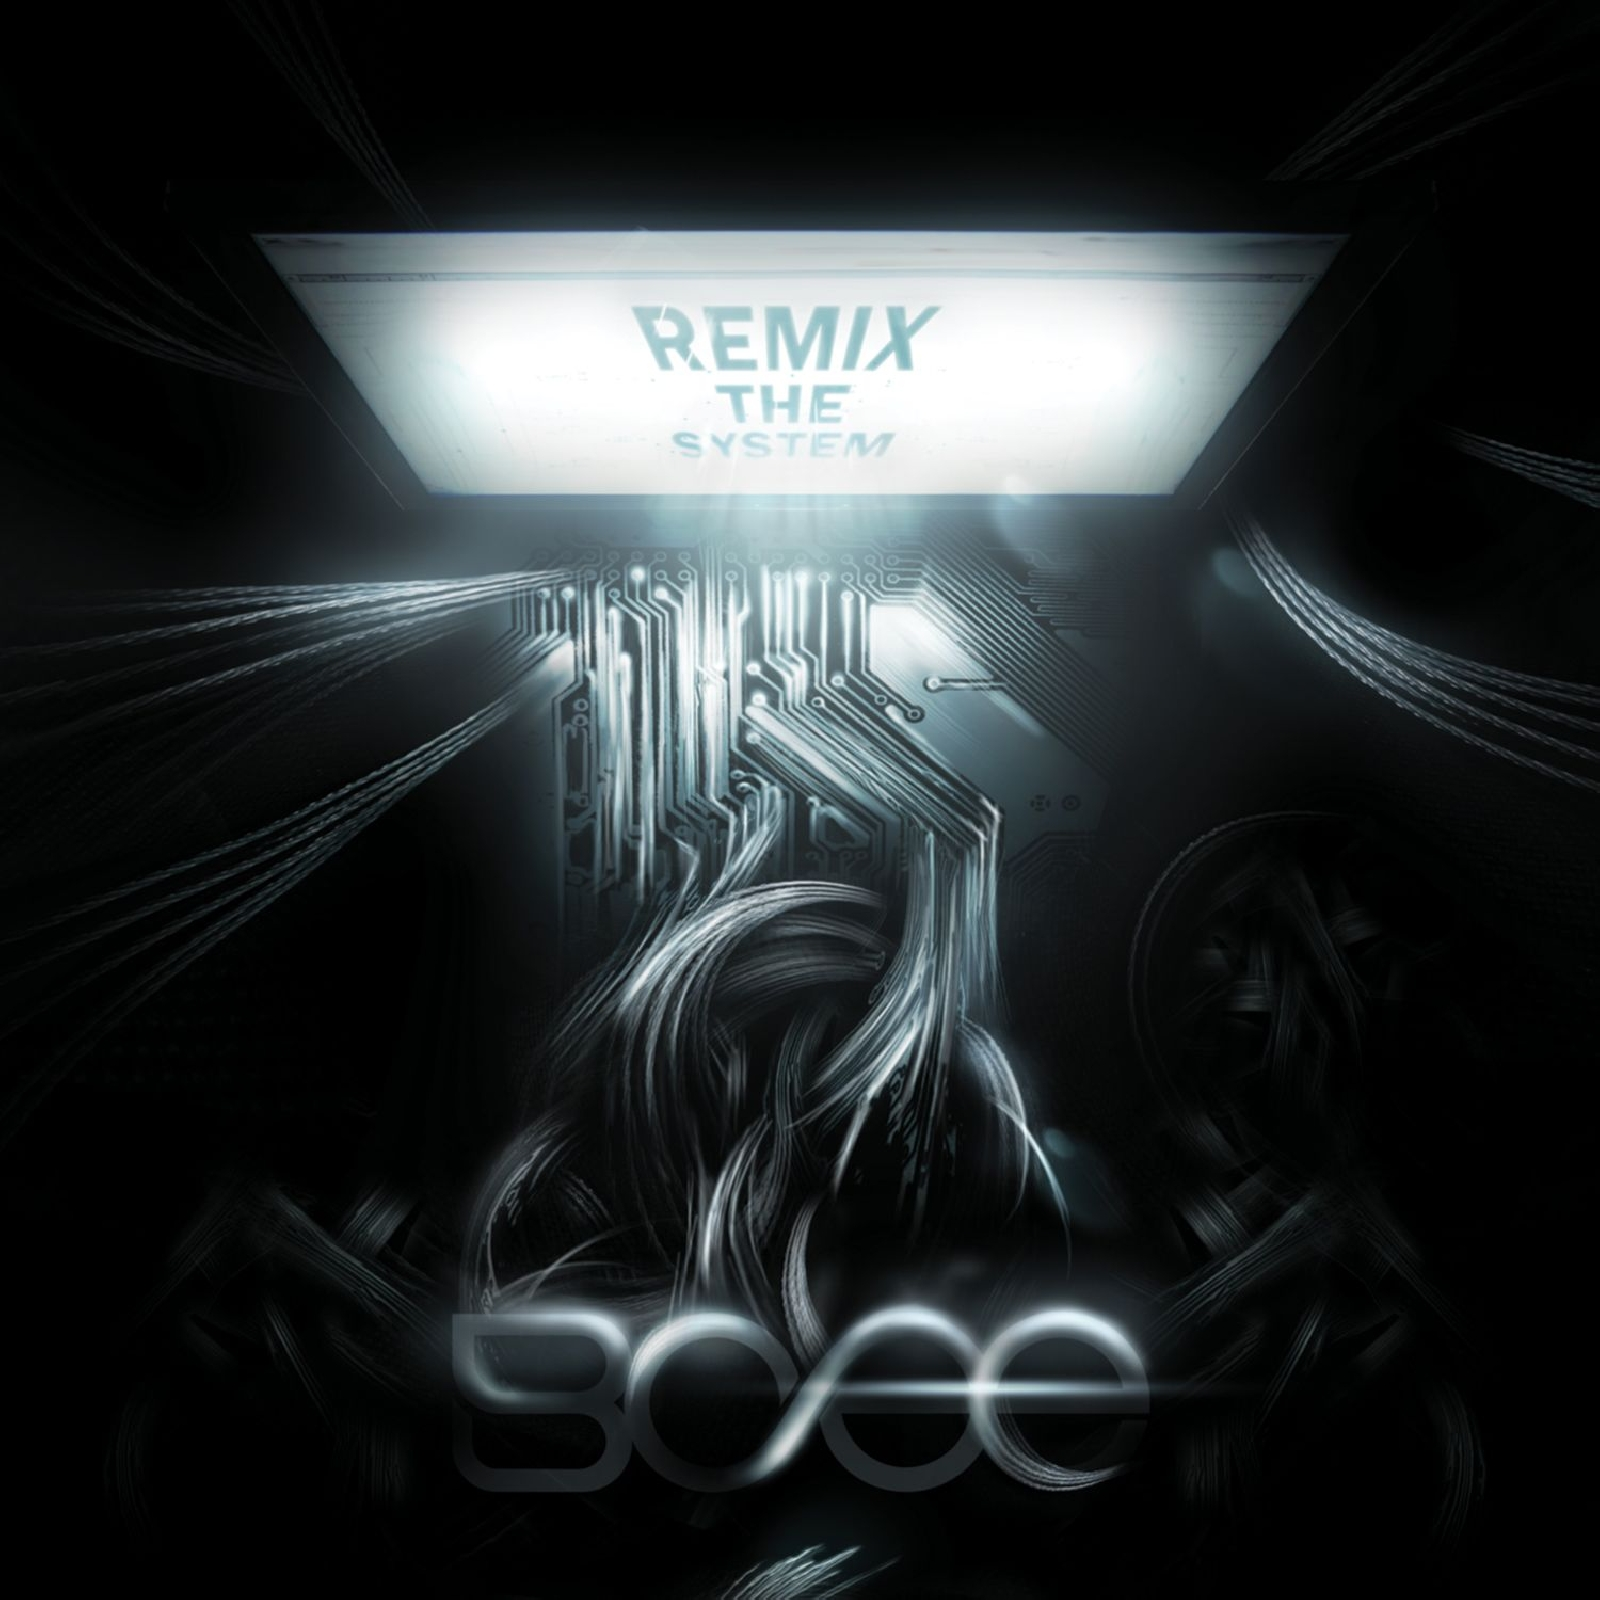 BCee/REMIX THE SYSTEM CD